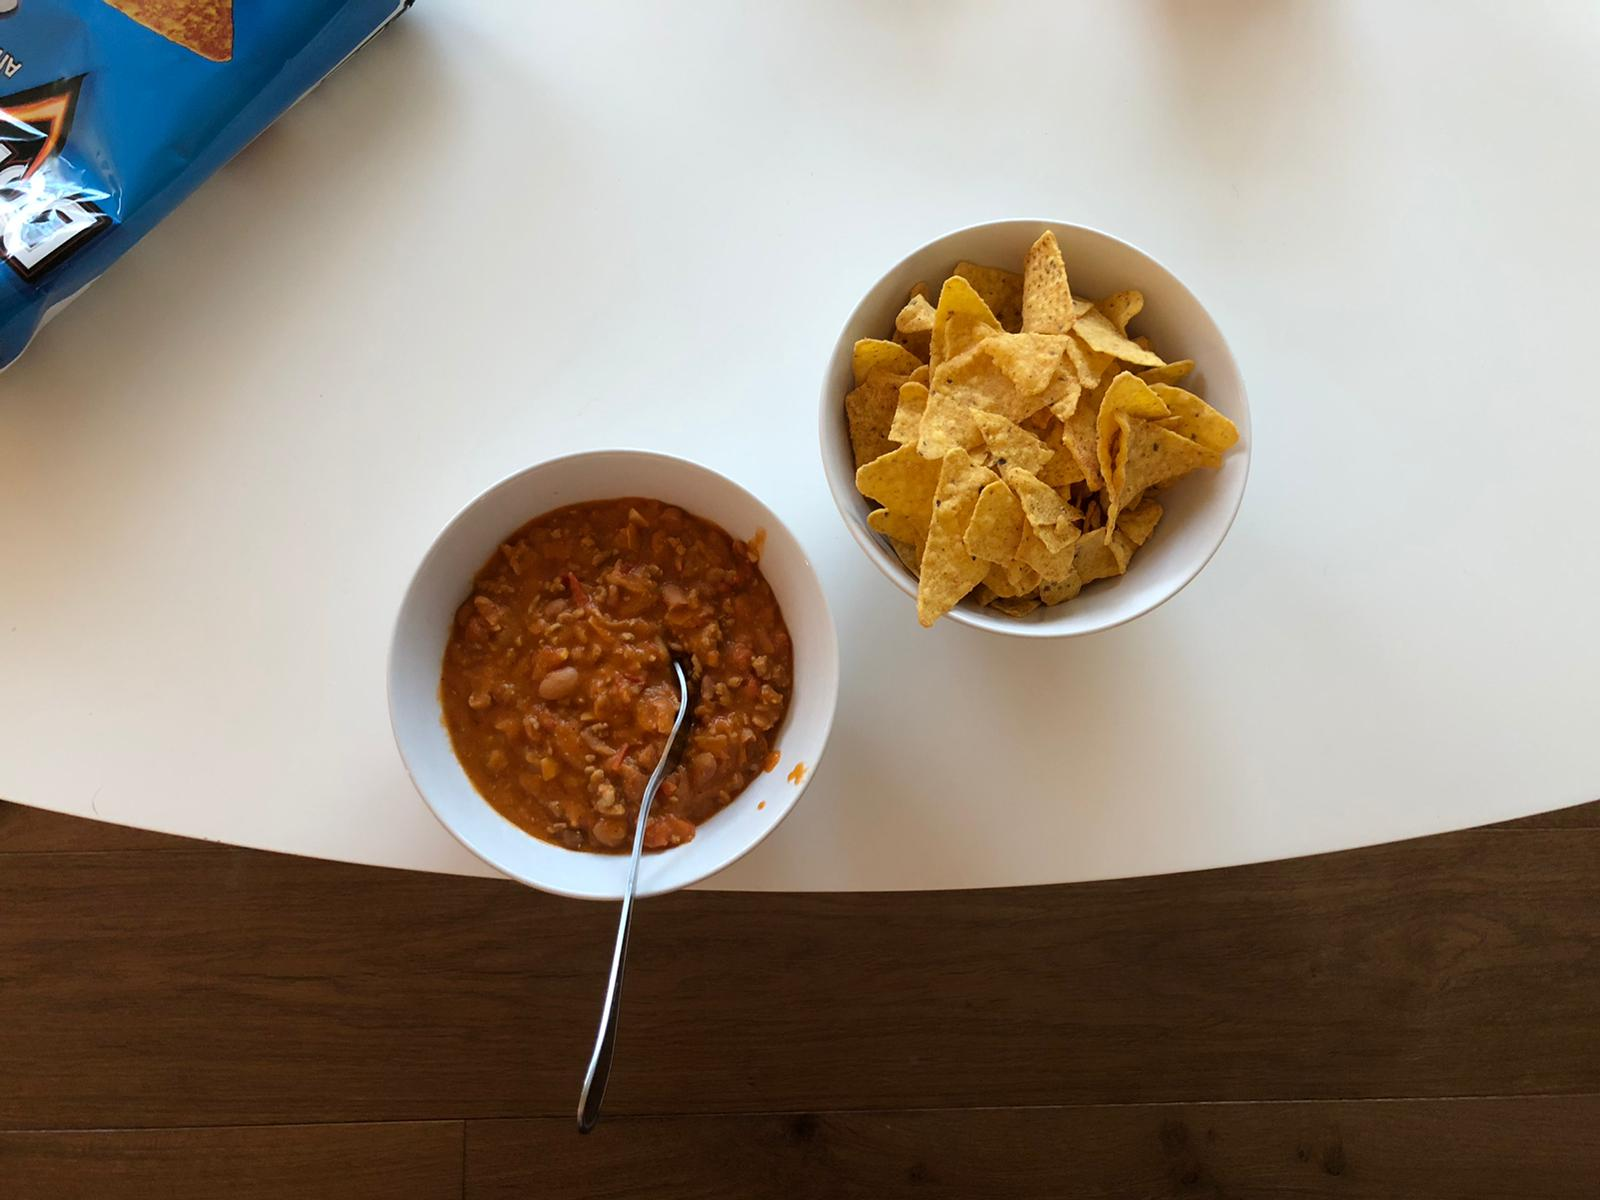 Chili met chips